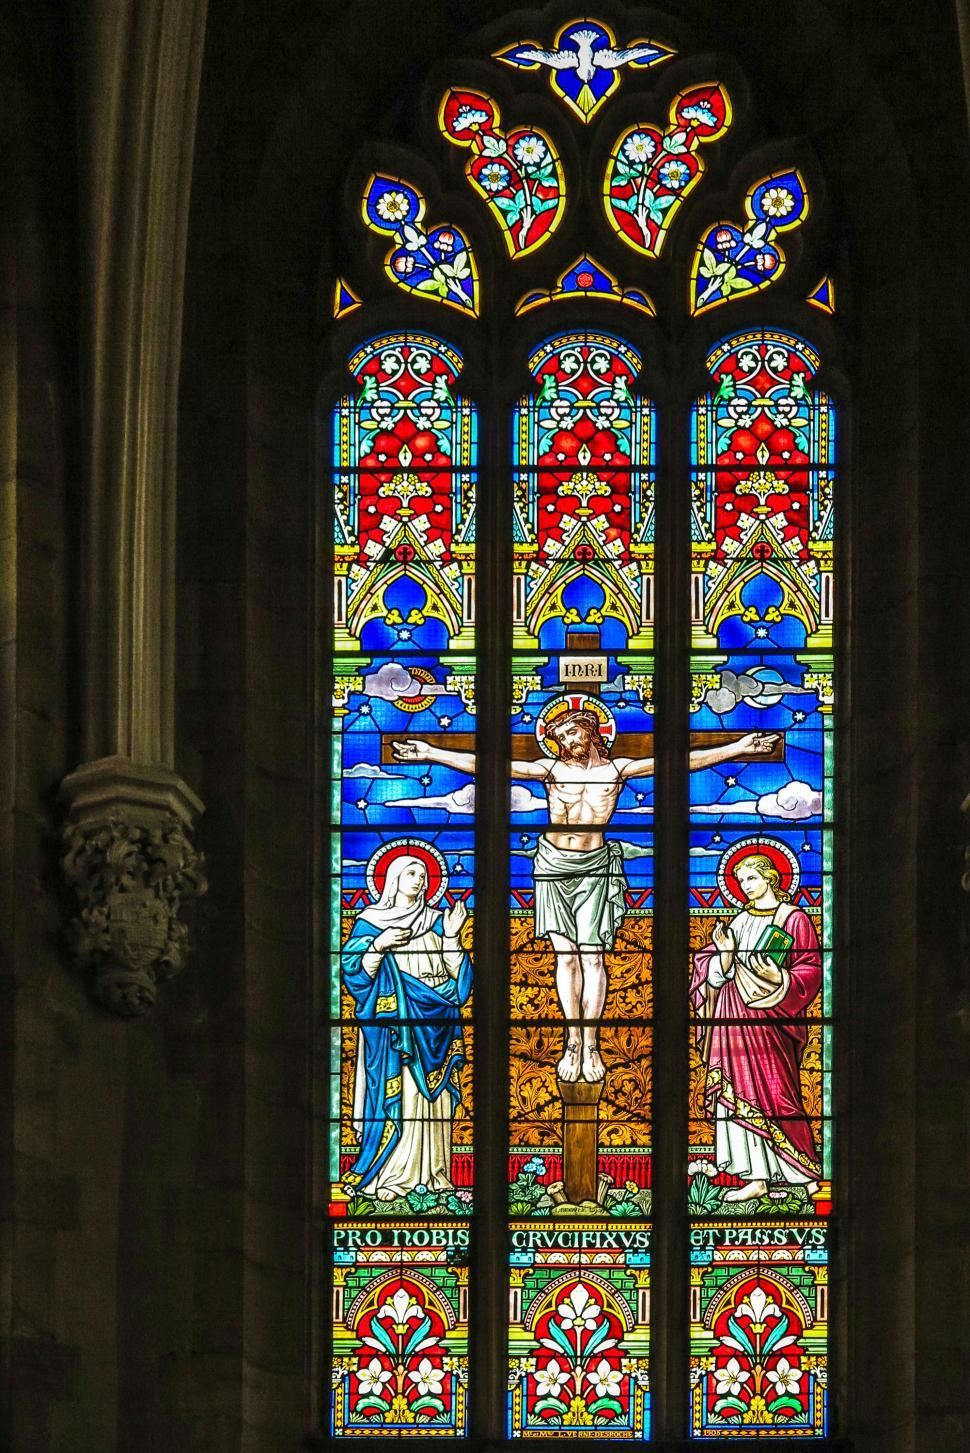 Download Free Stock HD Photo of Stained glass scene Online